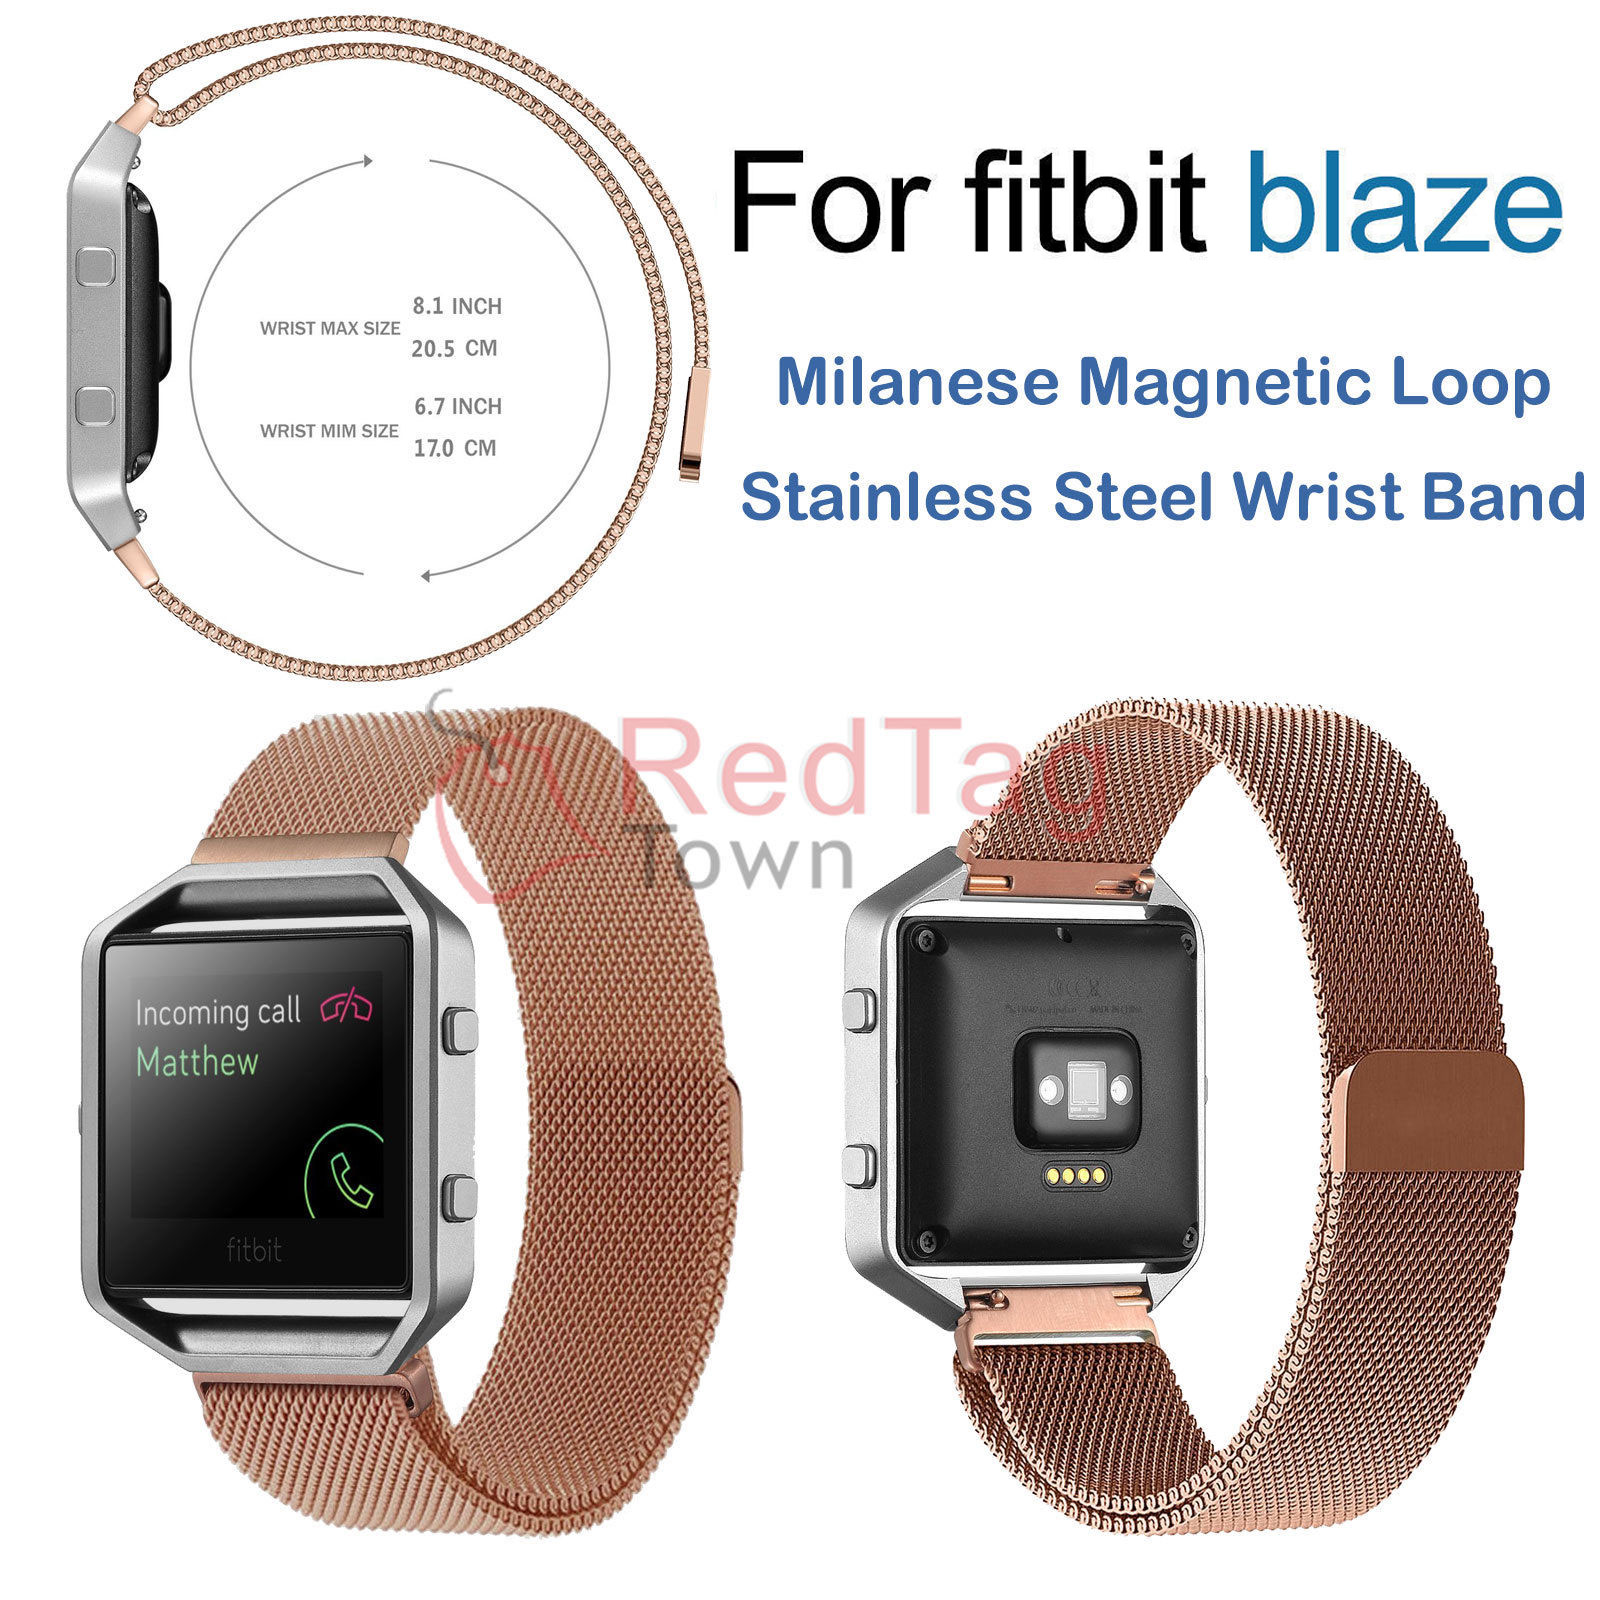 Milanese-Magnetic-Loop-Metal-Wrist-Watch-Band-Strap-Replacement-For-Fitbit-Blaze thumbnail 15